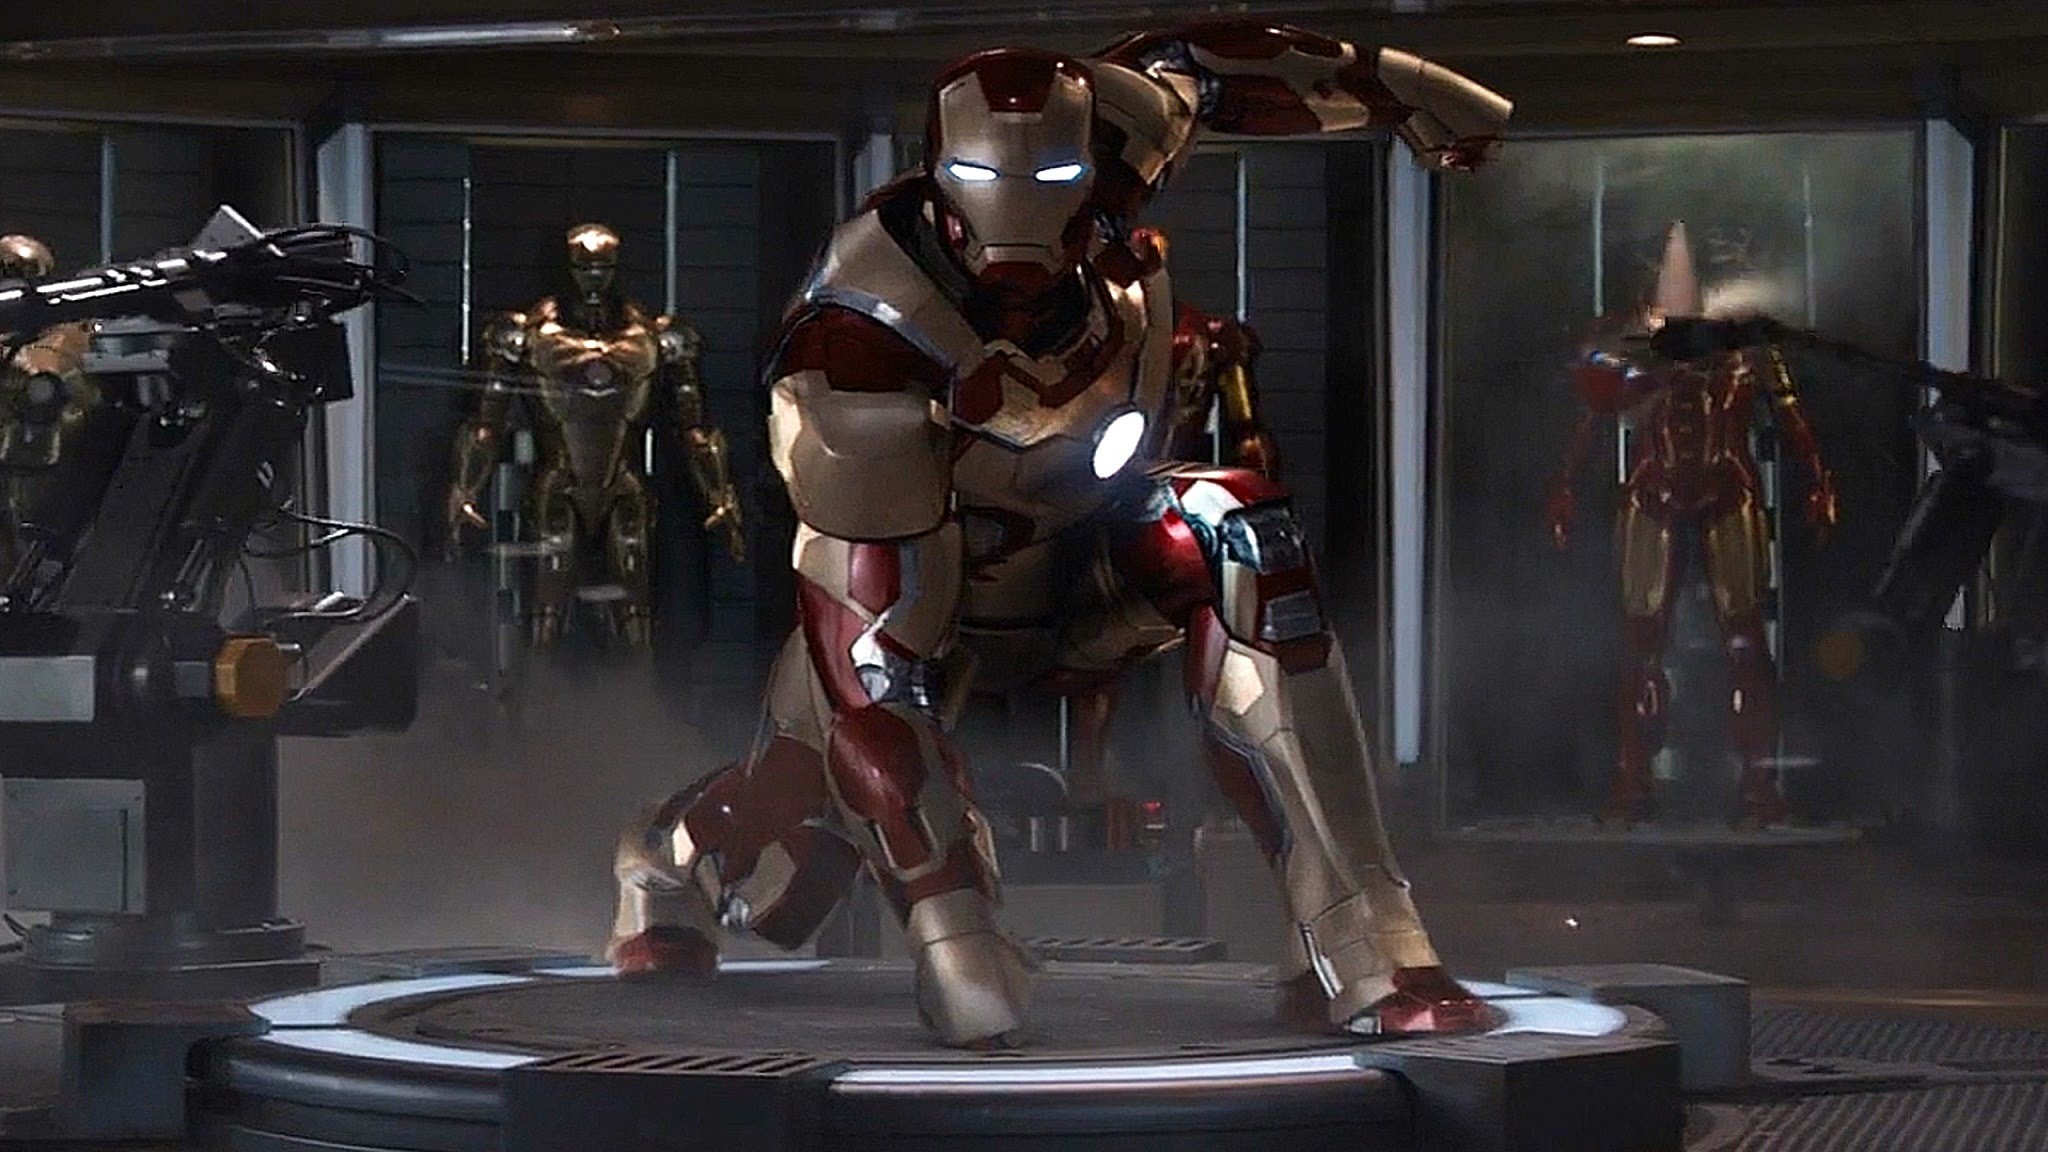 Iron Man 3 Hd Wallpaper Posted By Ethan Cunningham